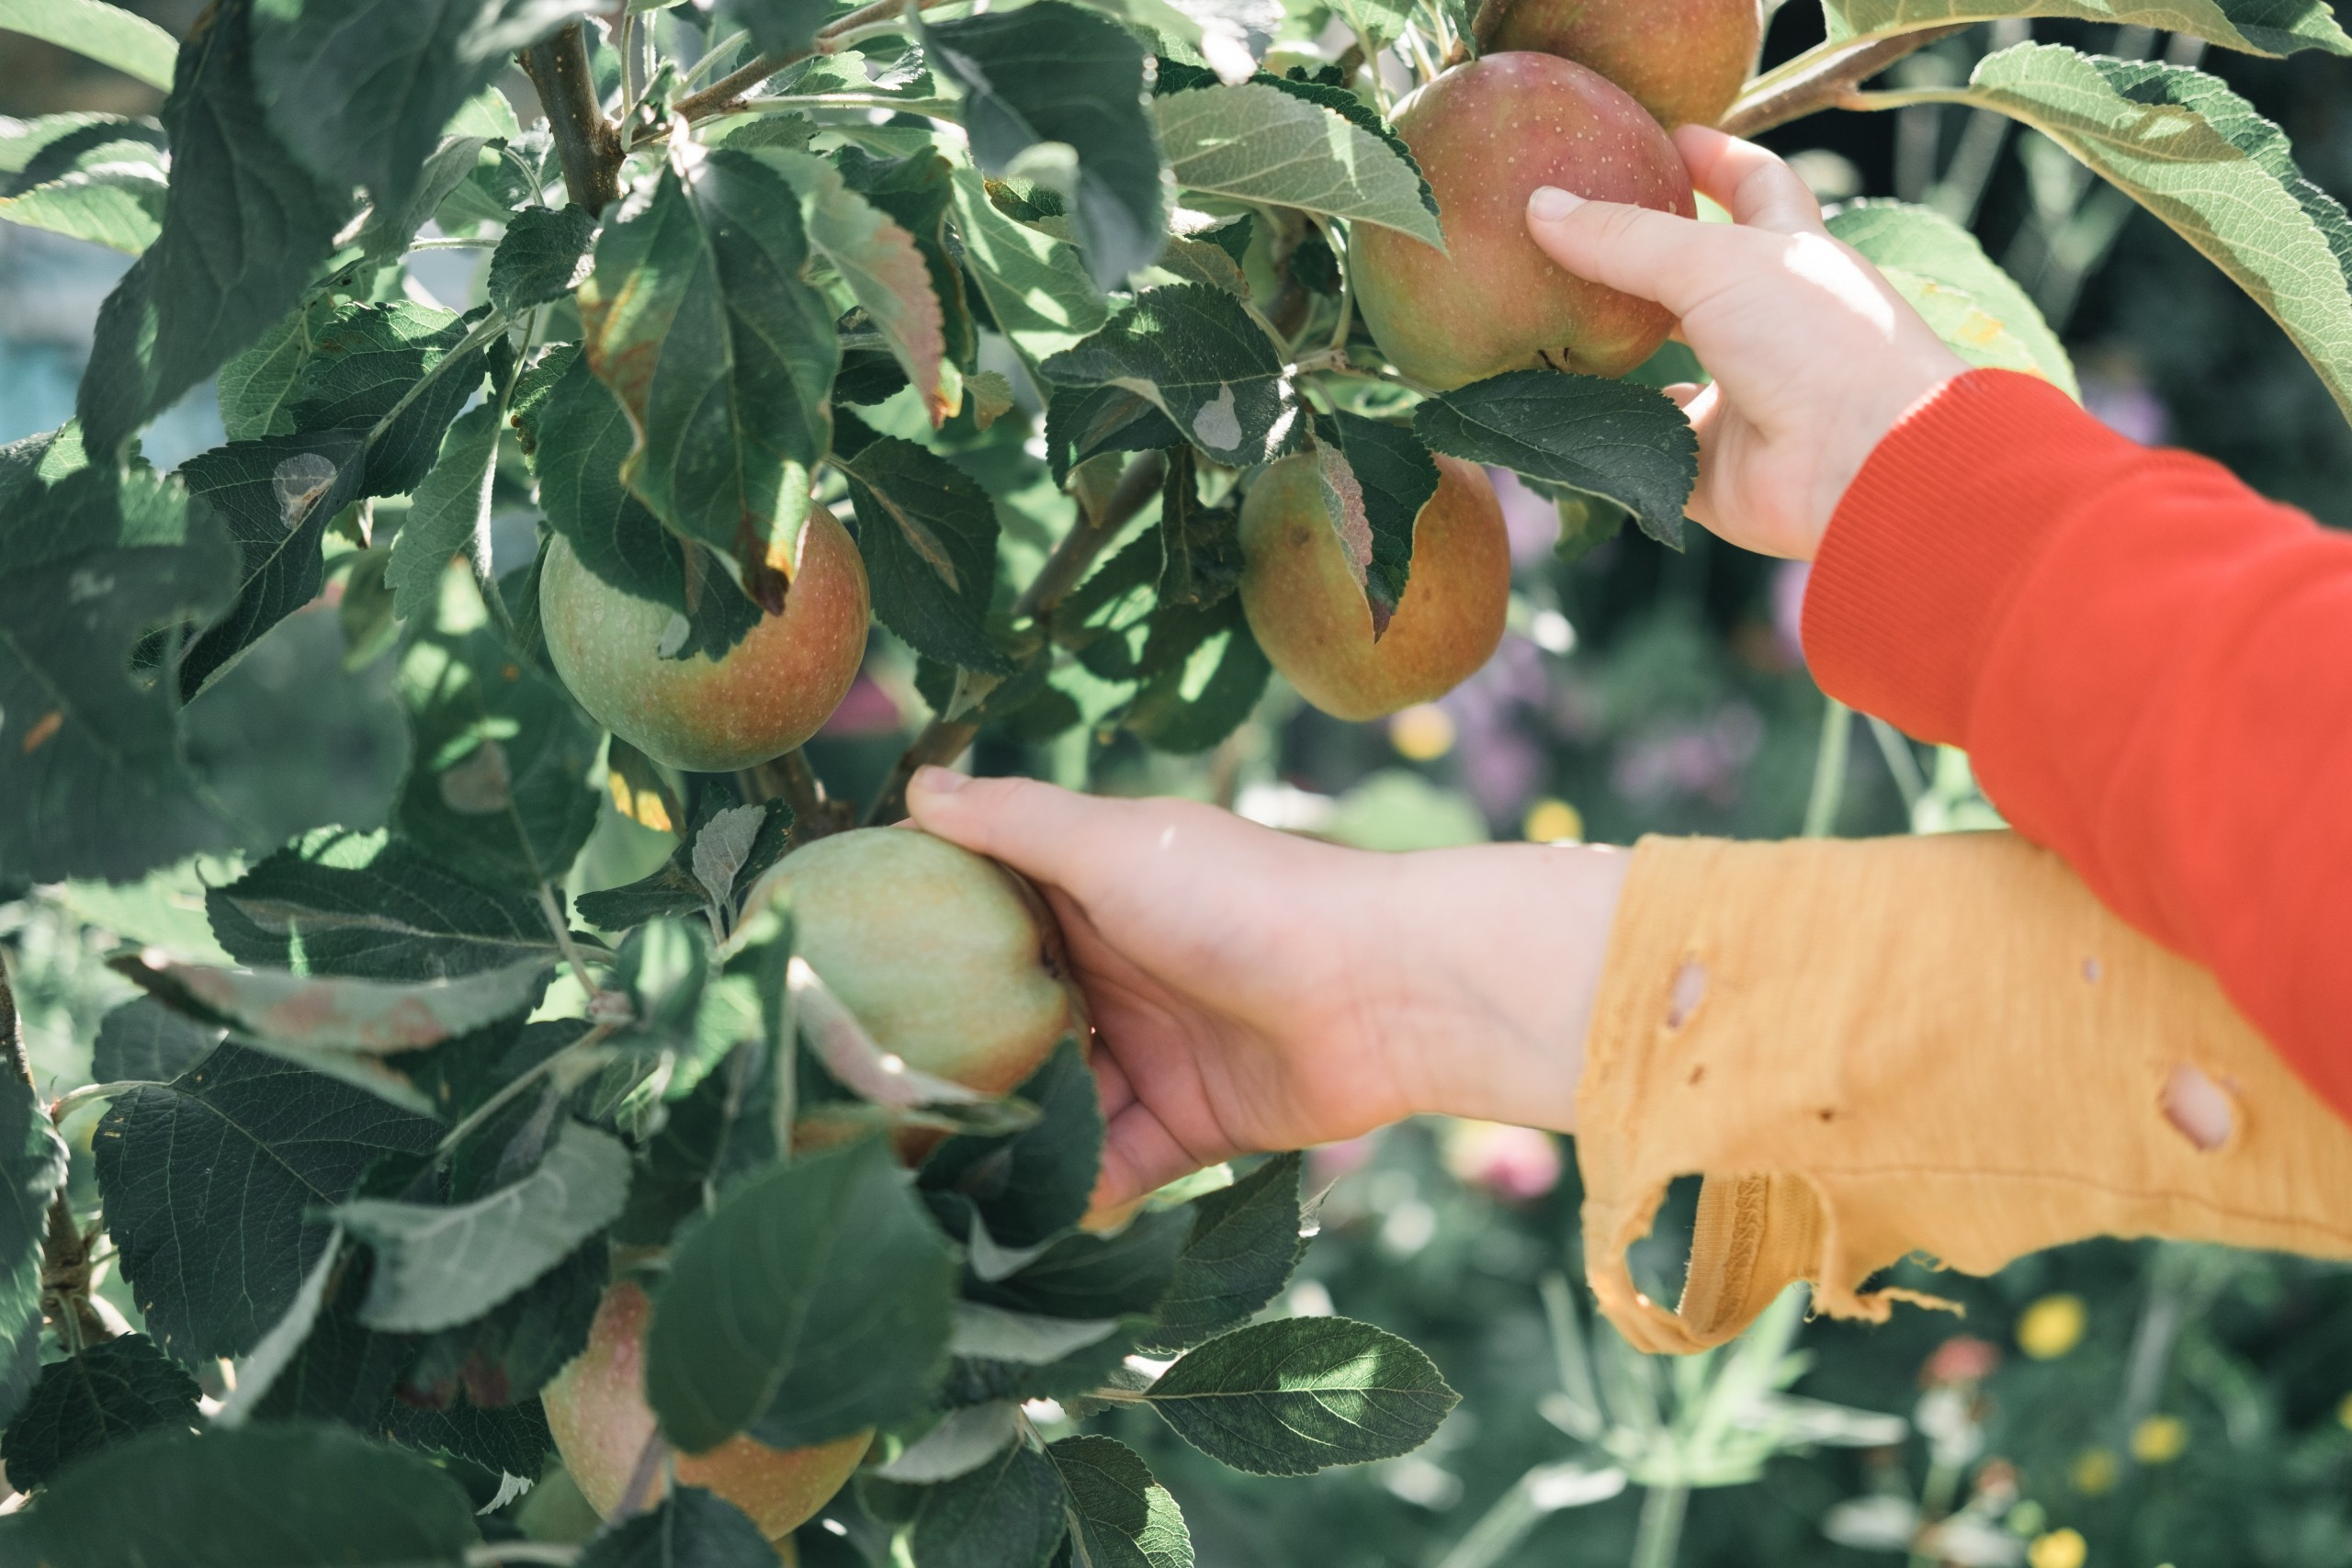 Two arms picking apples off of tree.